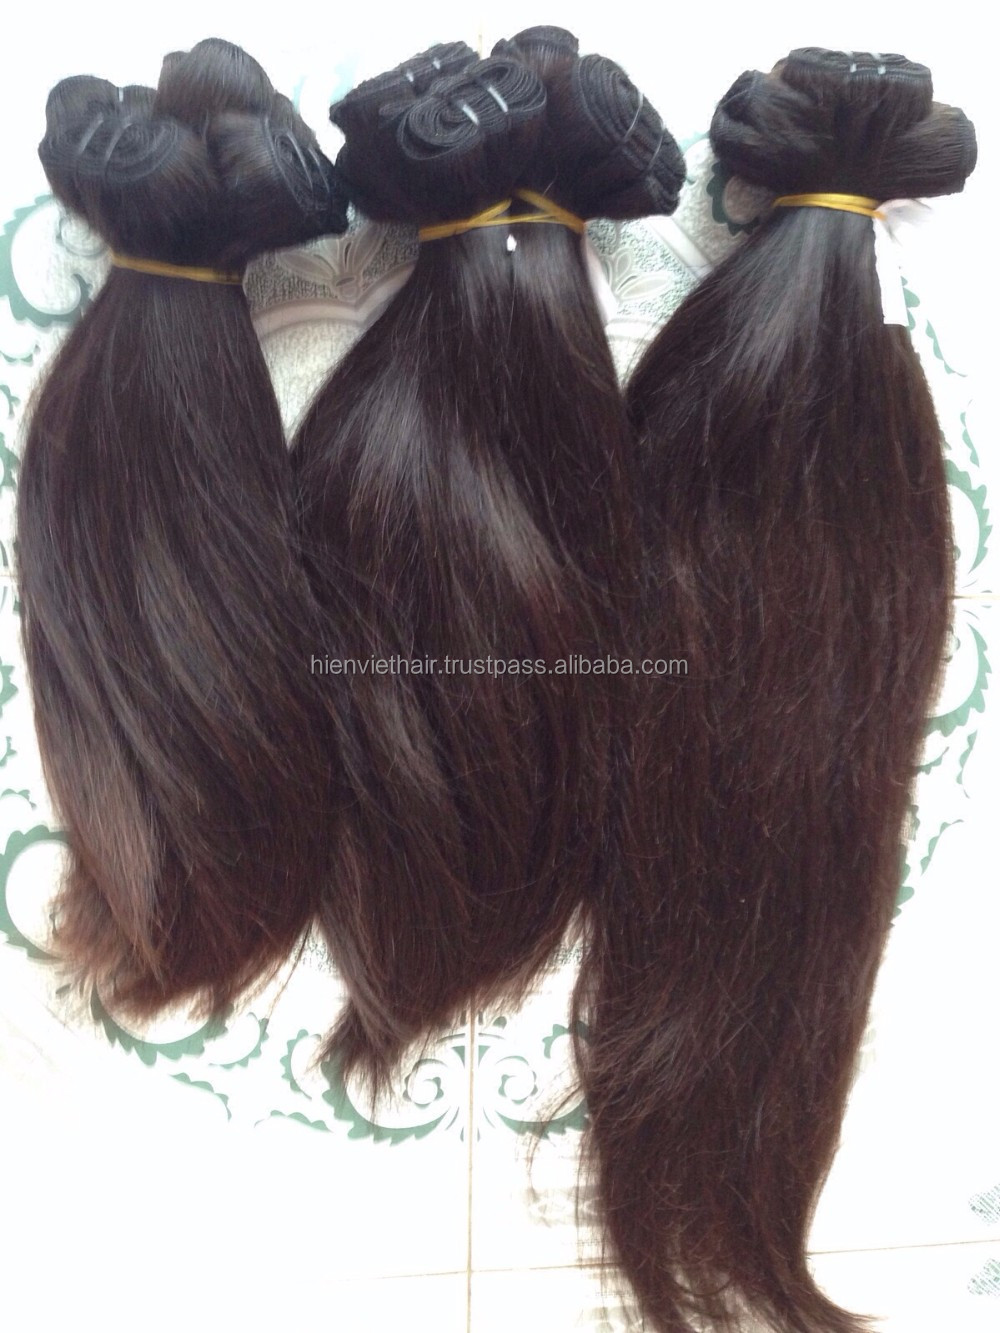 Vietnam high quality cheap wholesale price natural brown straight hair weaving - 100% remy virgin human hair